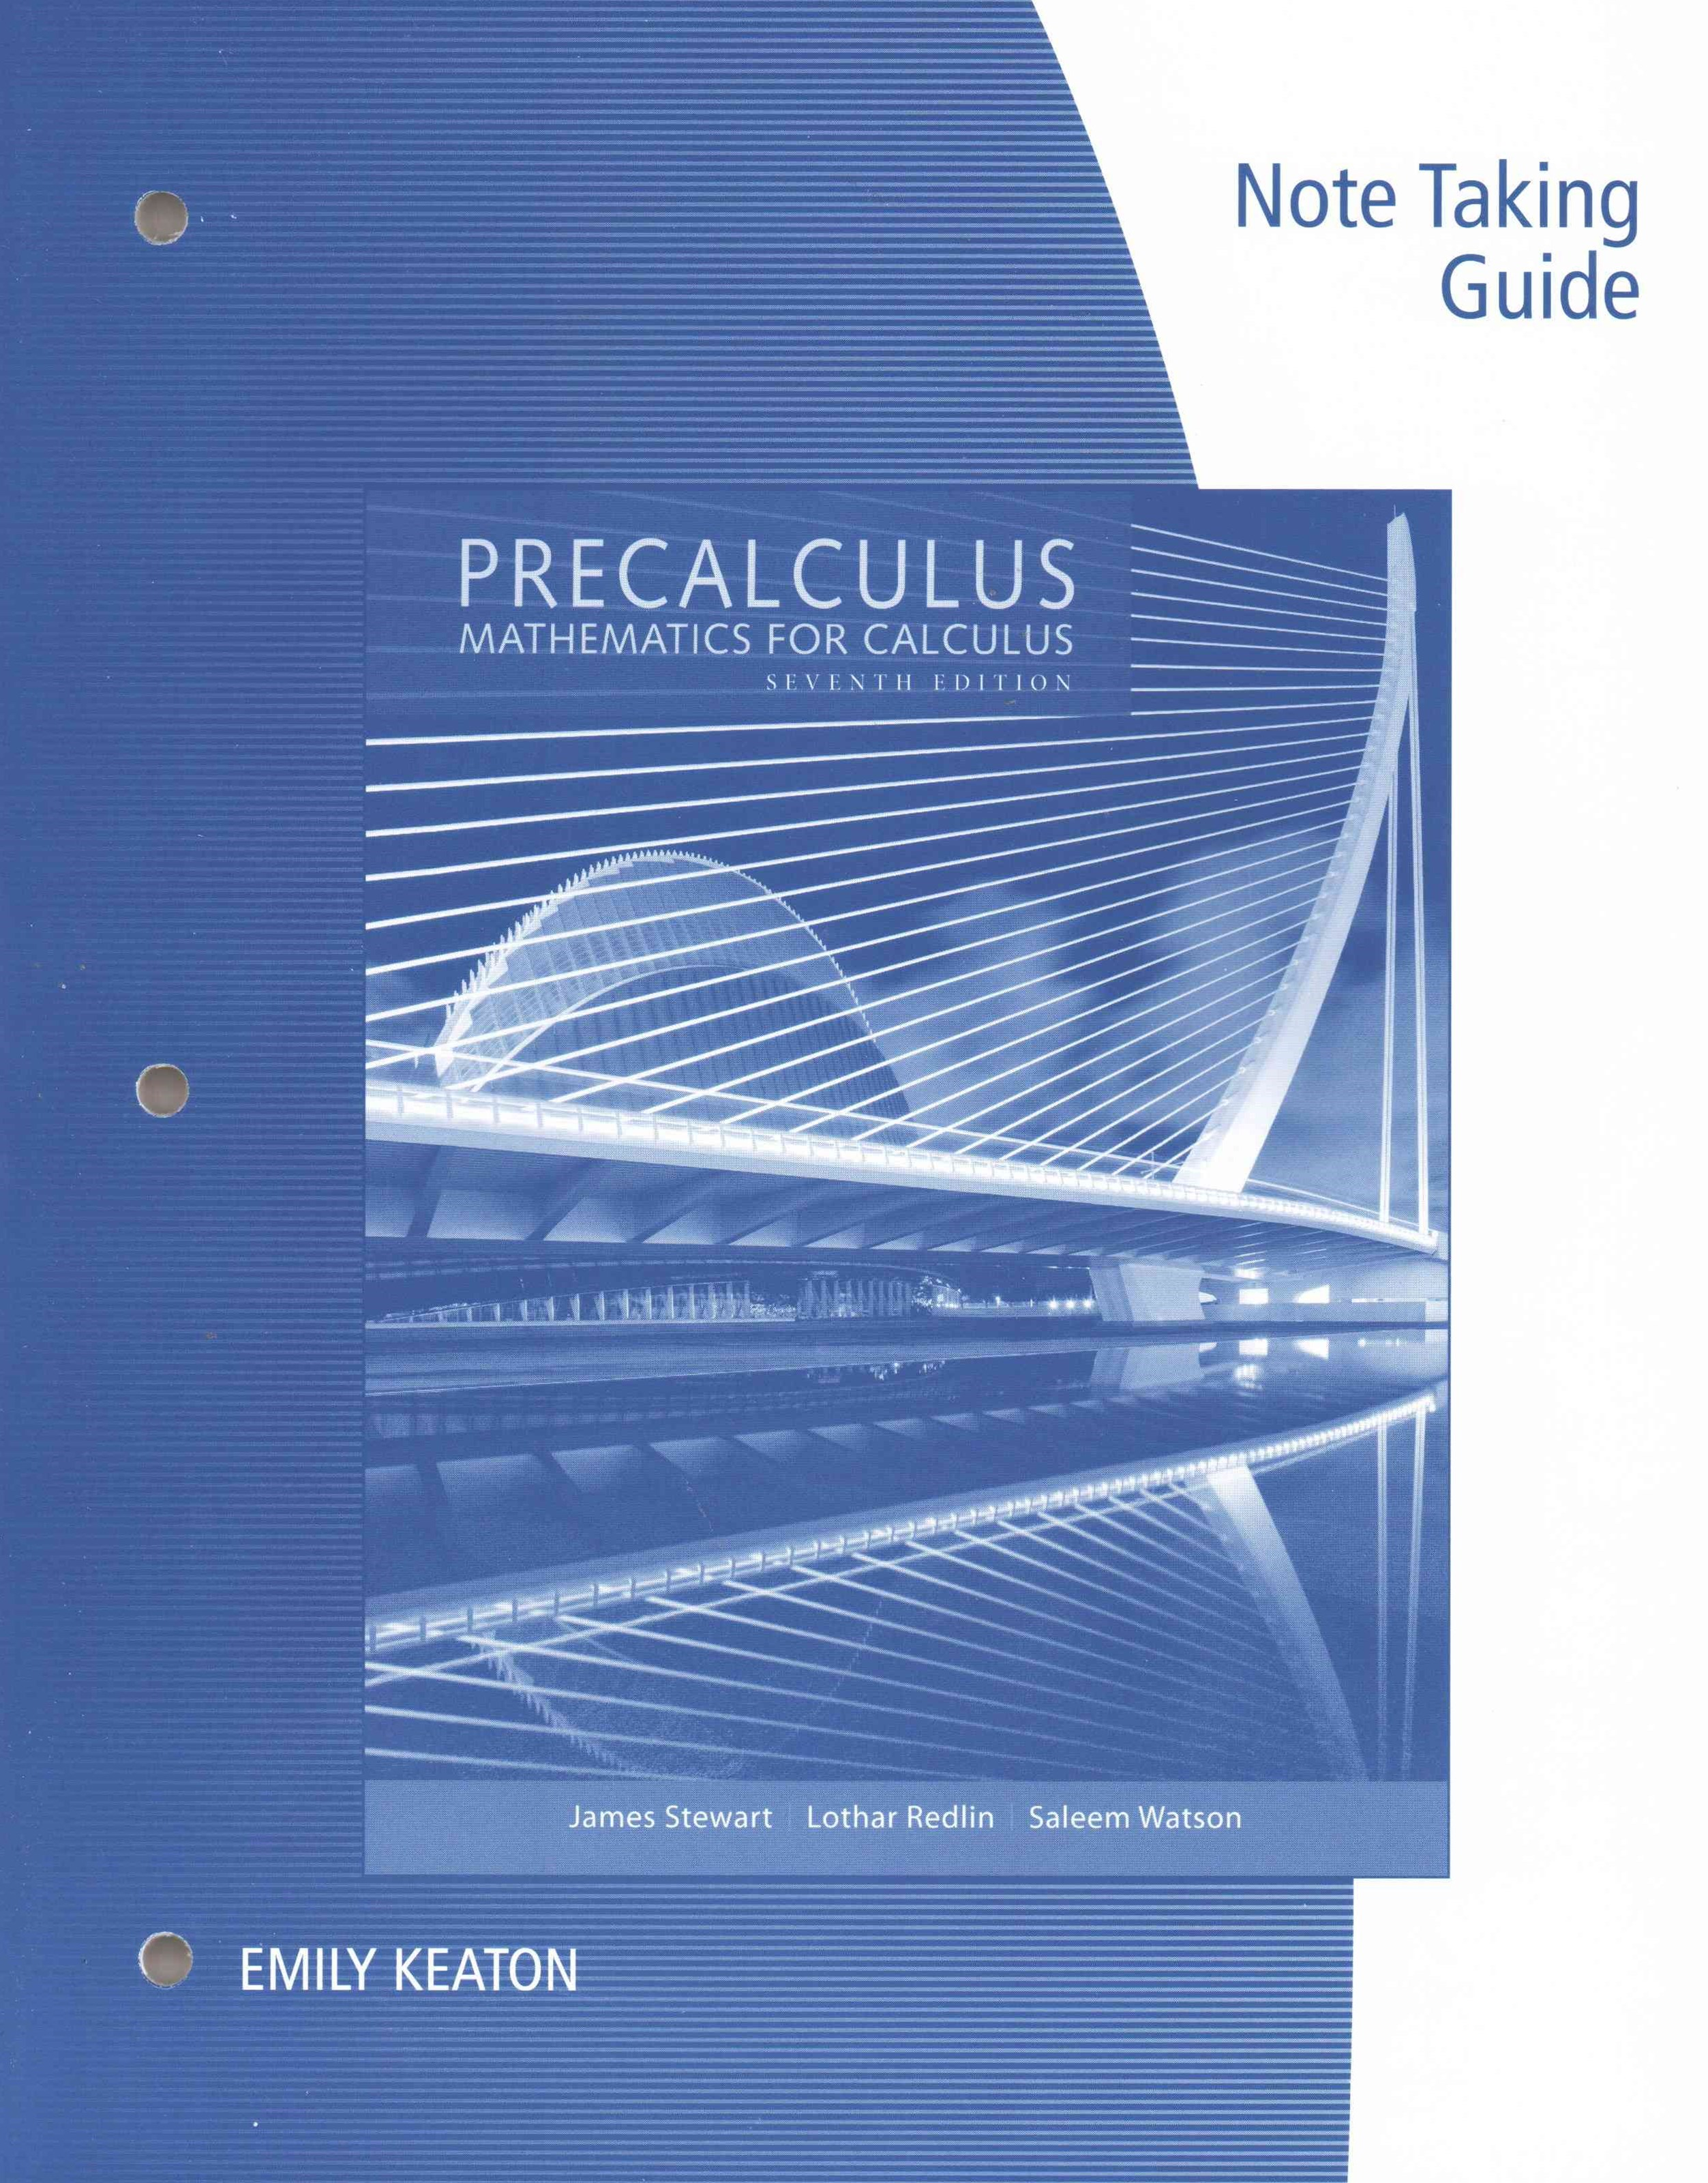 Note Taking Guide for Stewart/Redlin/Watson's Precalculus: Mathematics  for Calculus, 7th